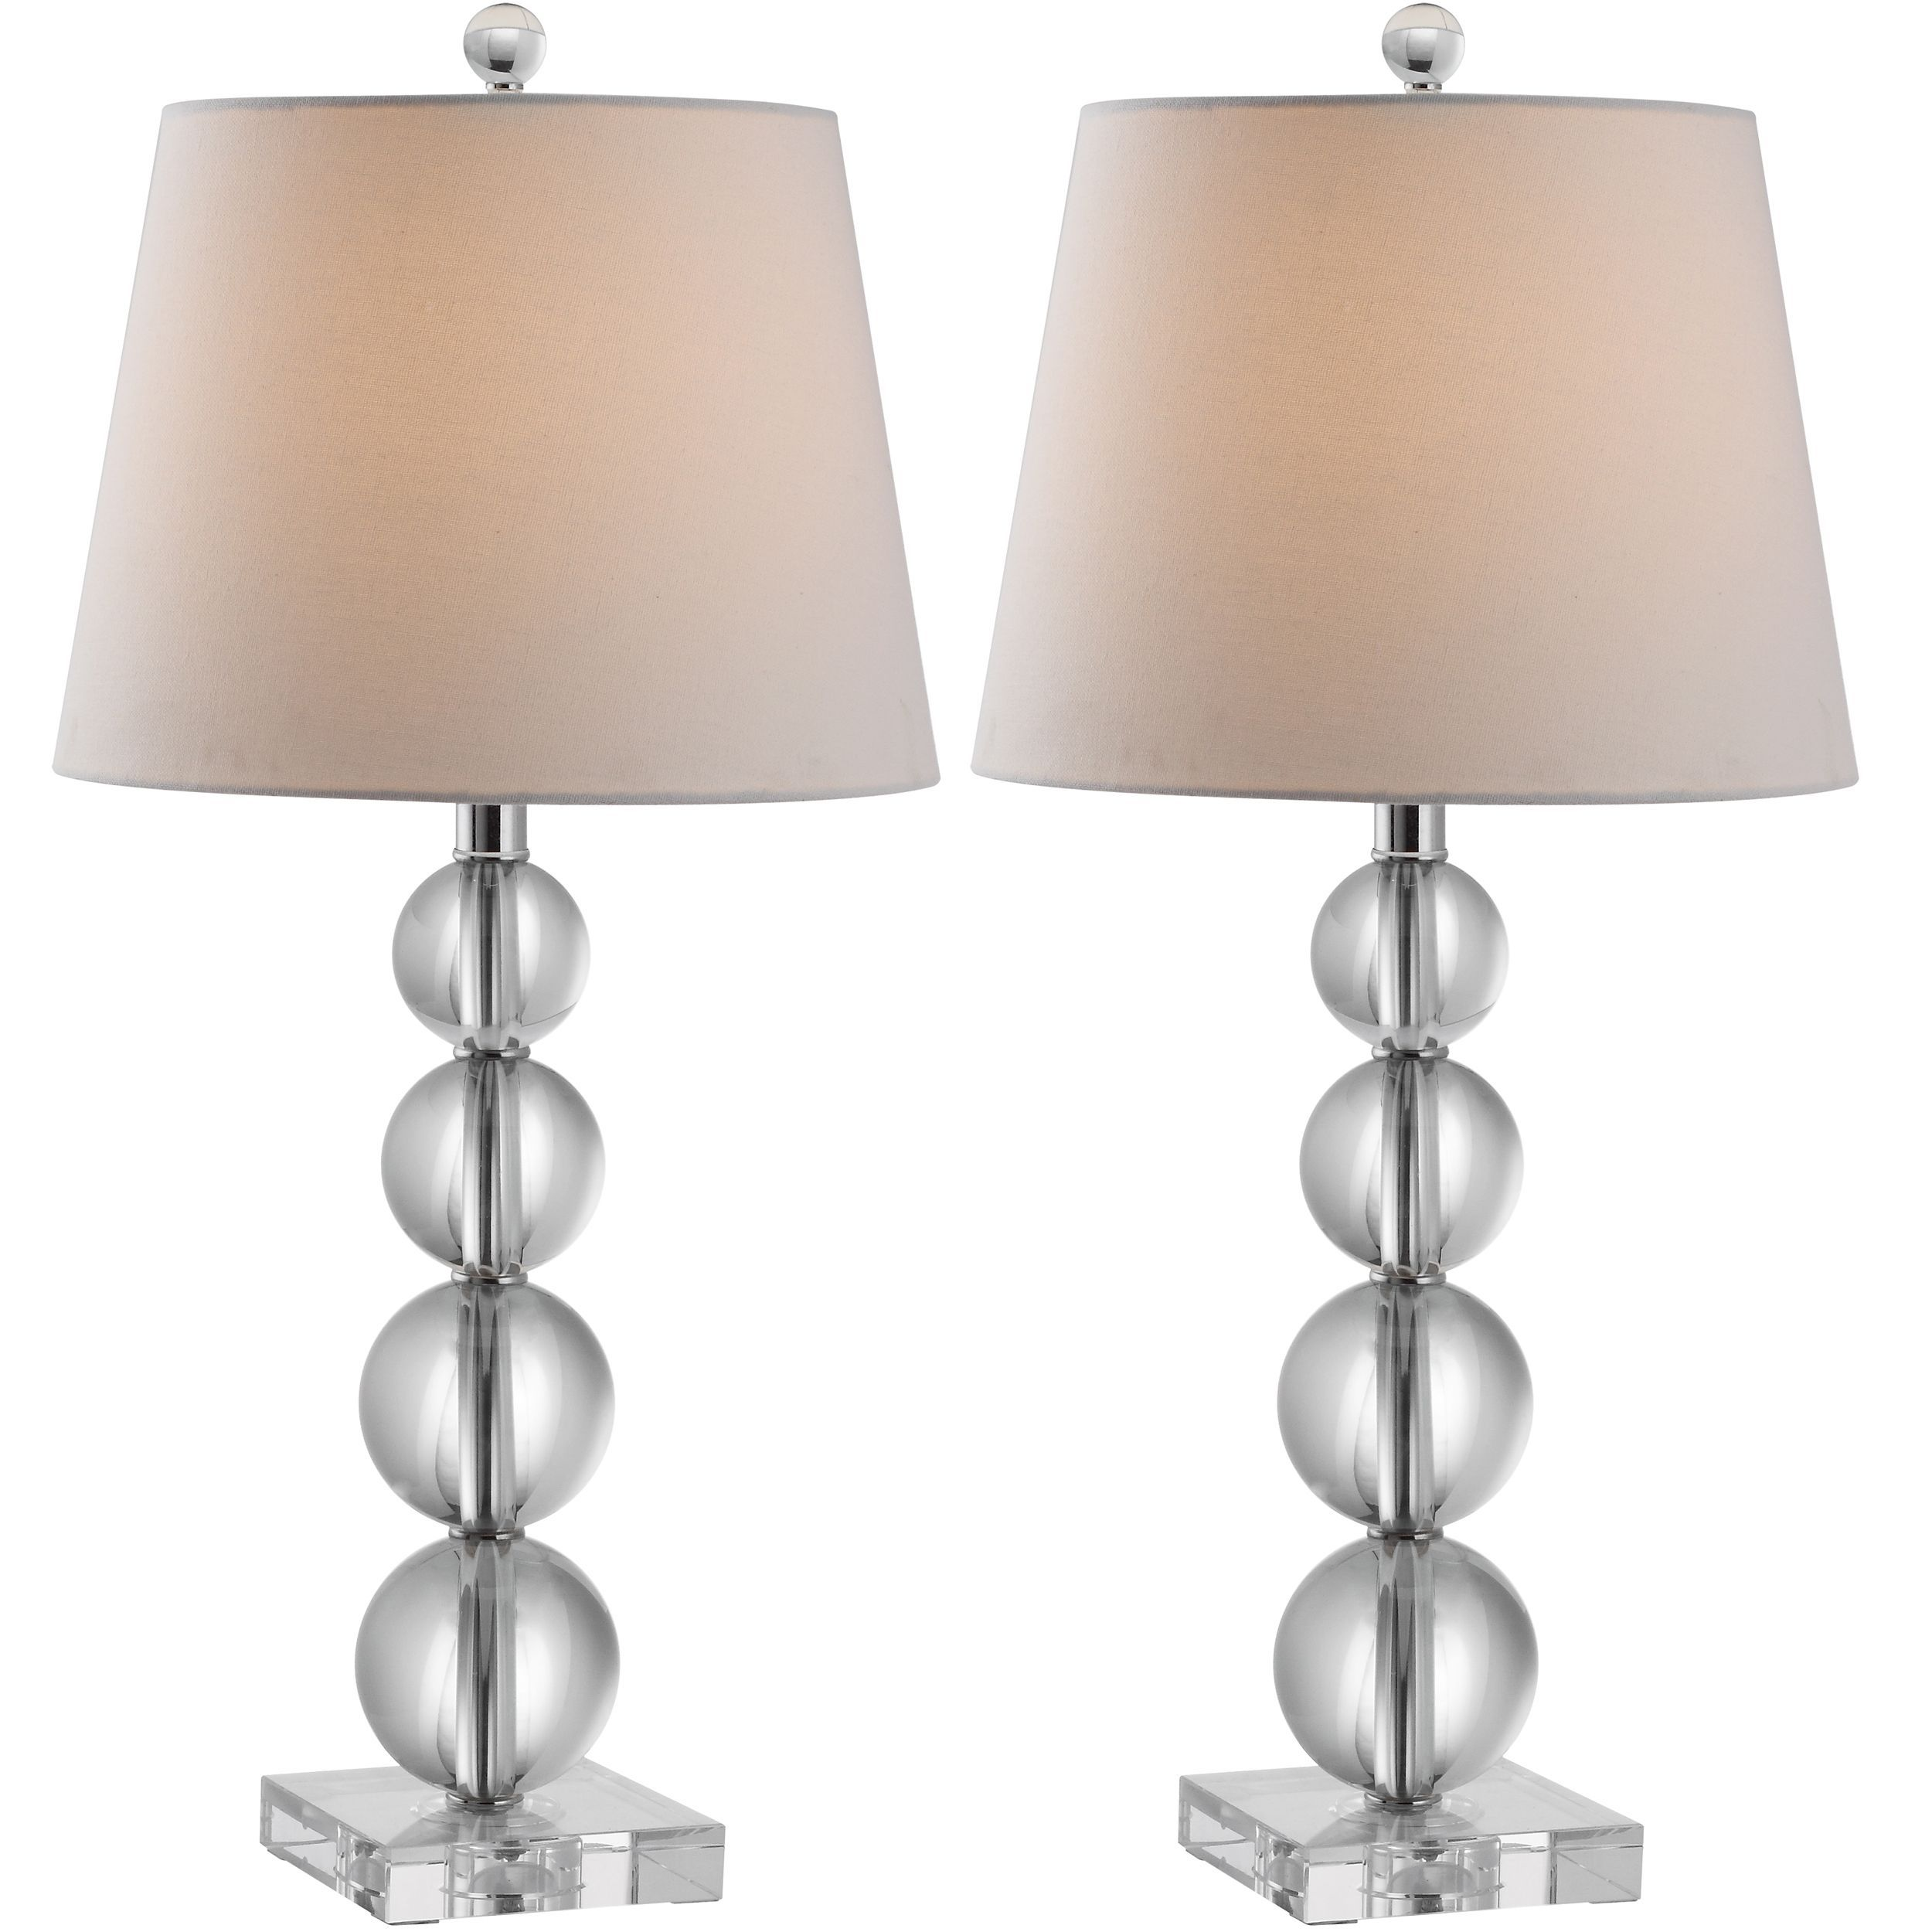 Safavieh lighting 265 inch millie crystal table lamps set of 2 safavieh lighting 265 inch millie crystal table lamps aloadofball Images